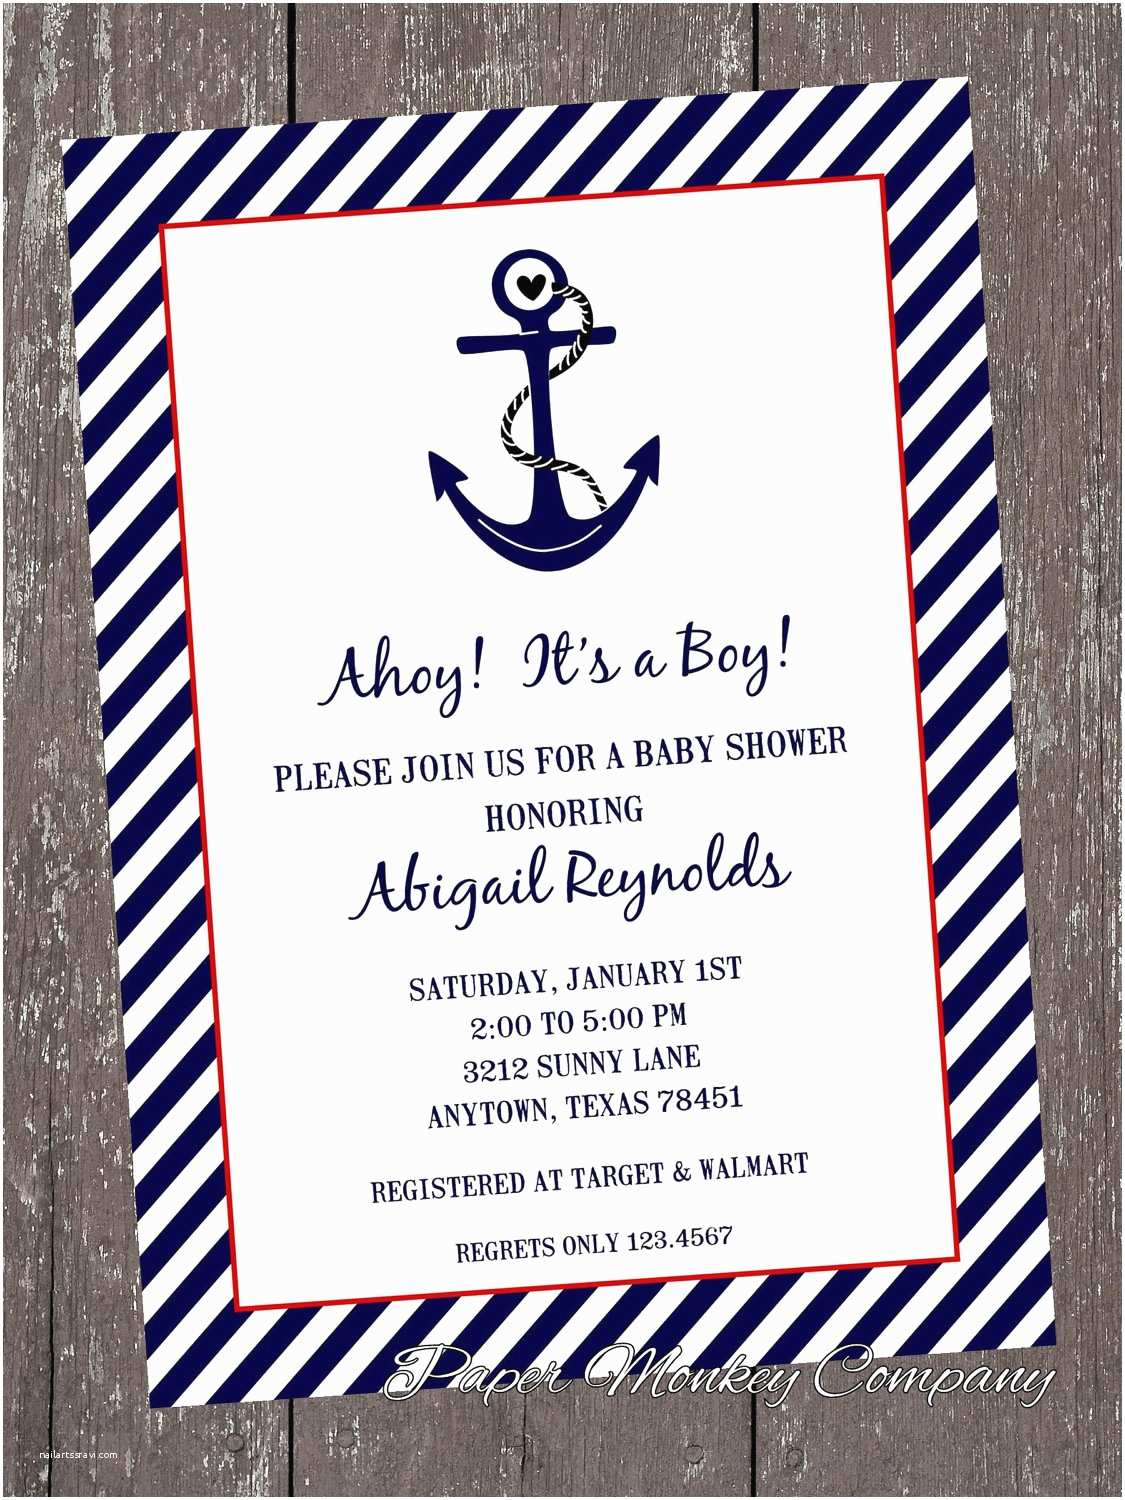 Sailor Baby Shower Invitations Nautical Baby Shower Invitations 1 00 Each with by